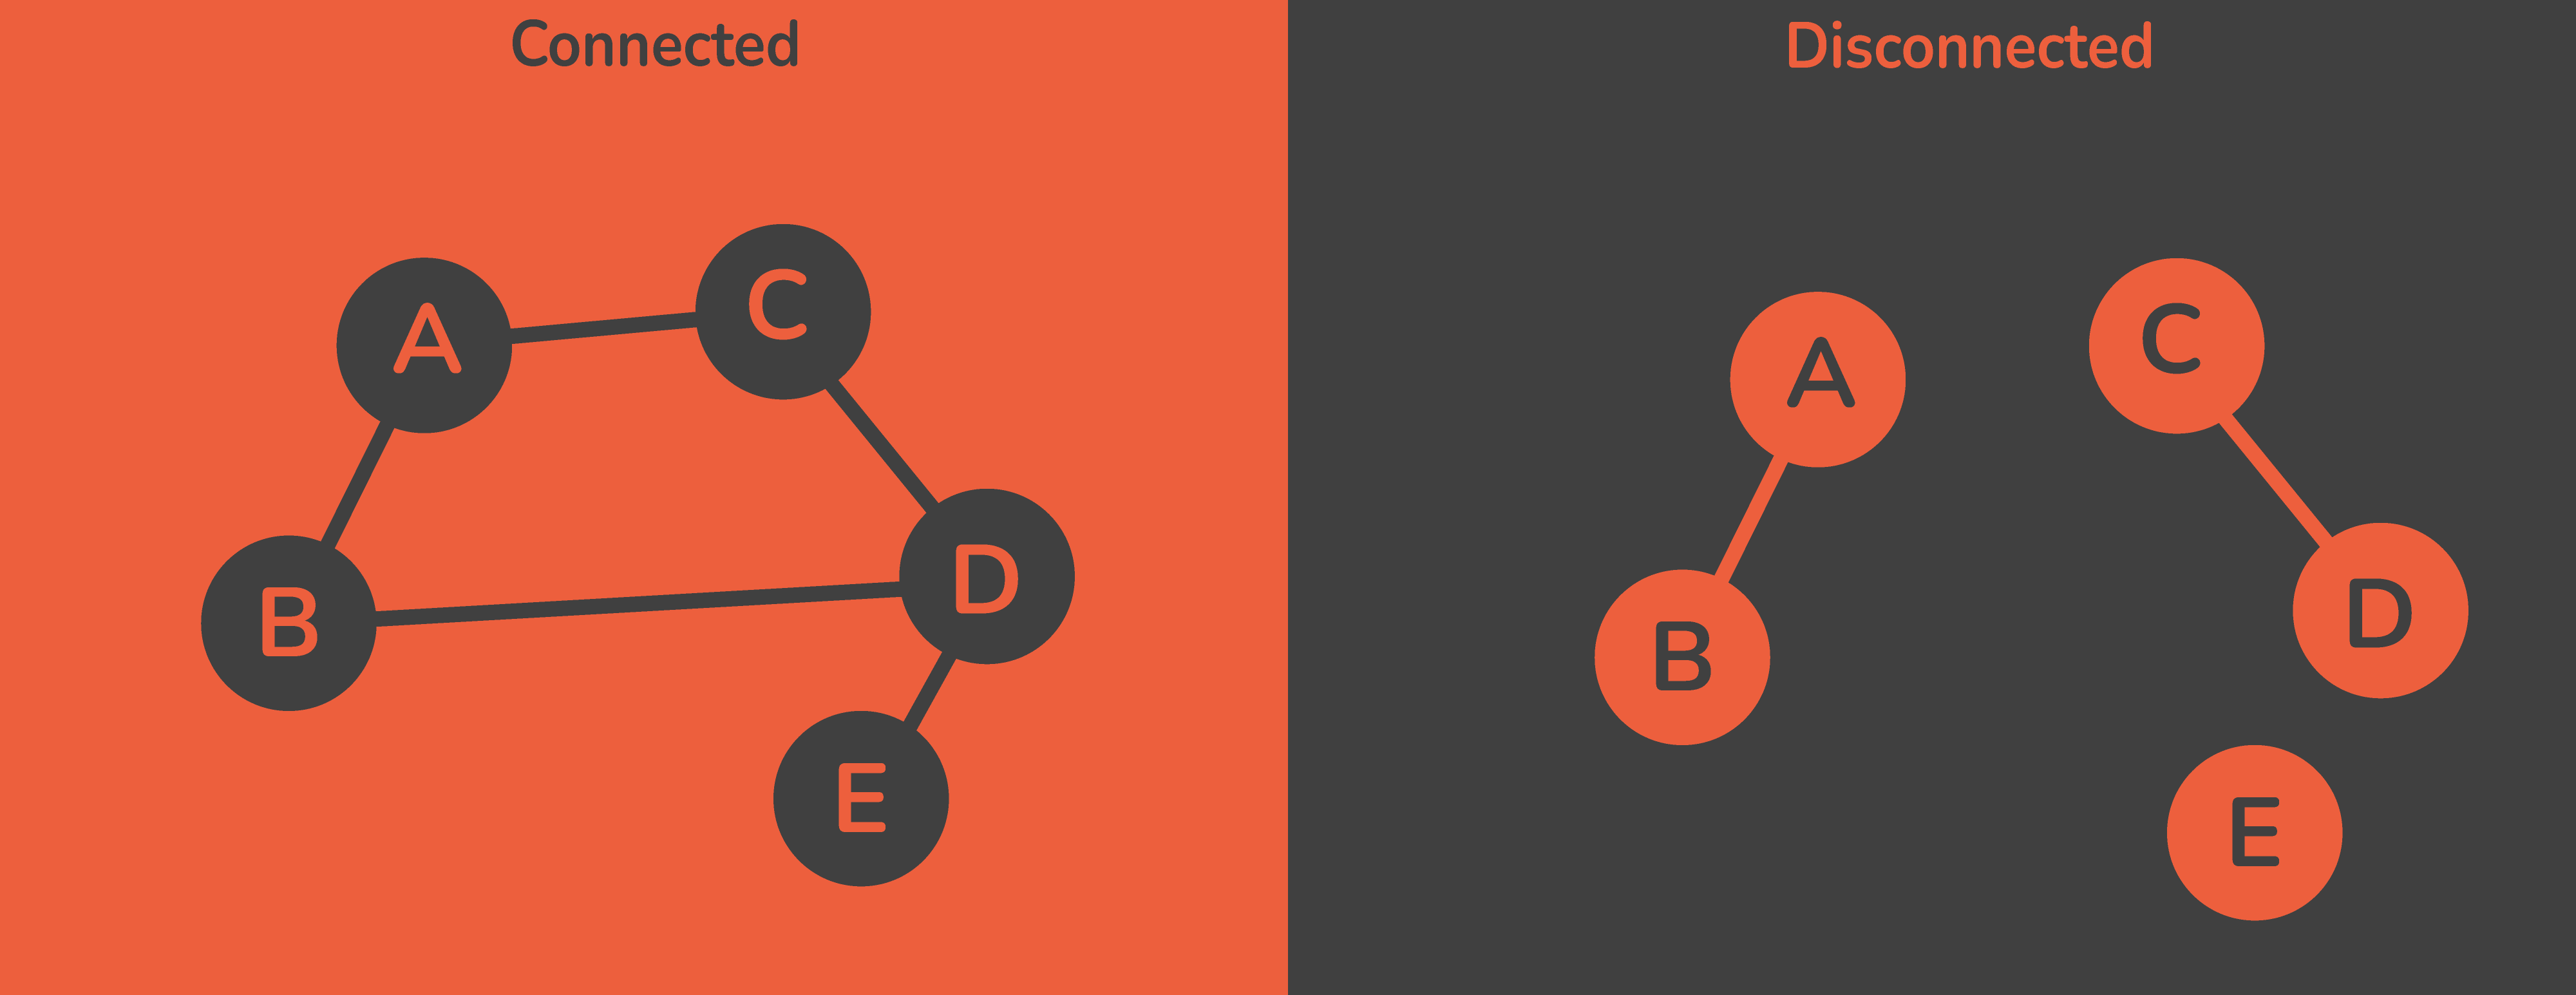 connected and disconnected graphs